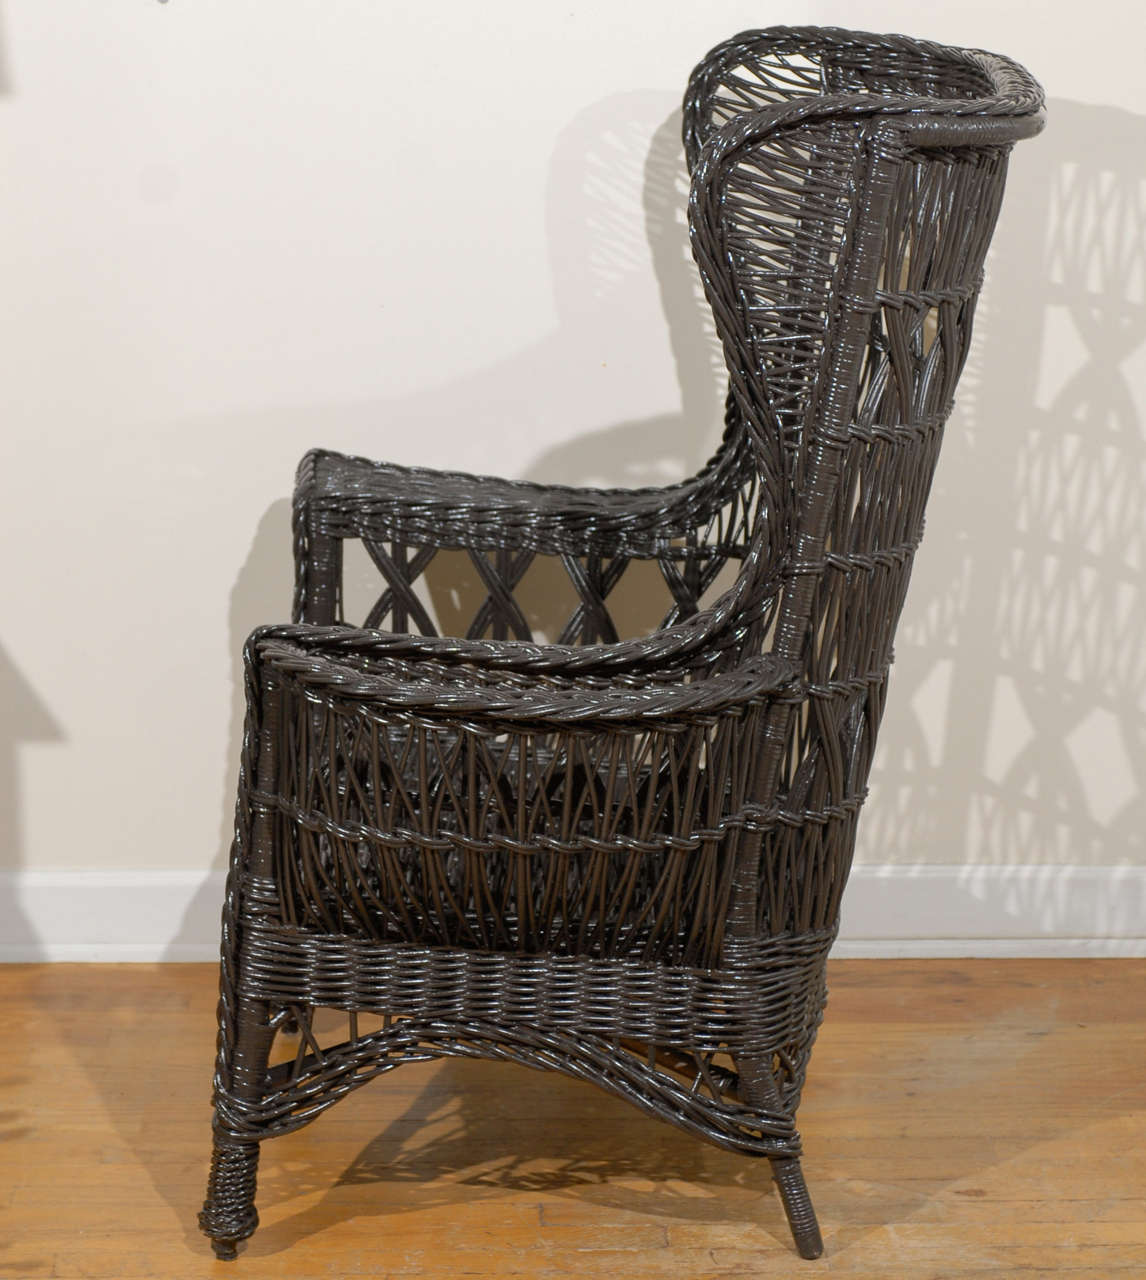 Antique American Wicker Wing Chair with Magazine Pocket 7